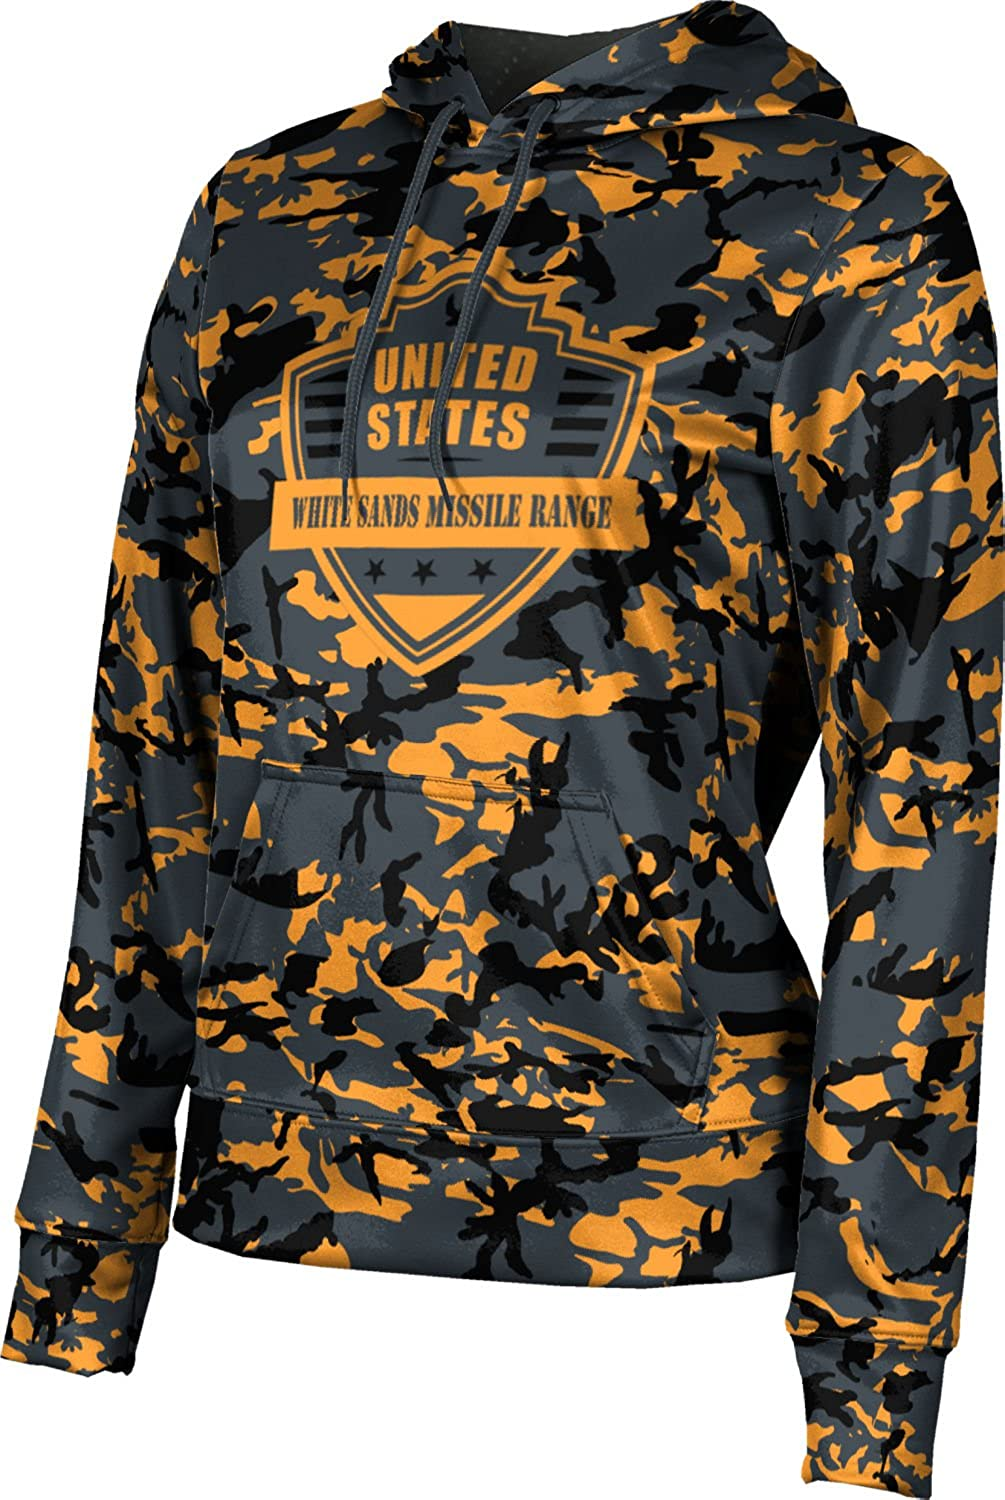 ProSphere Women's White Sands Missile Range Military Camo Pullover Hoodie